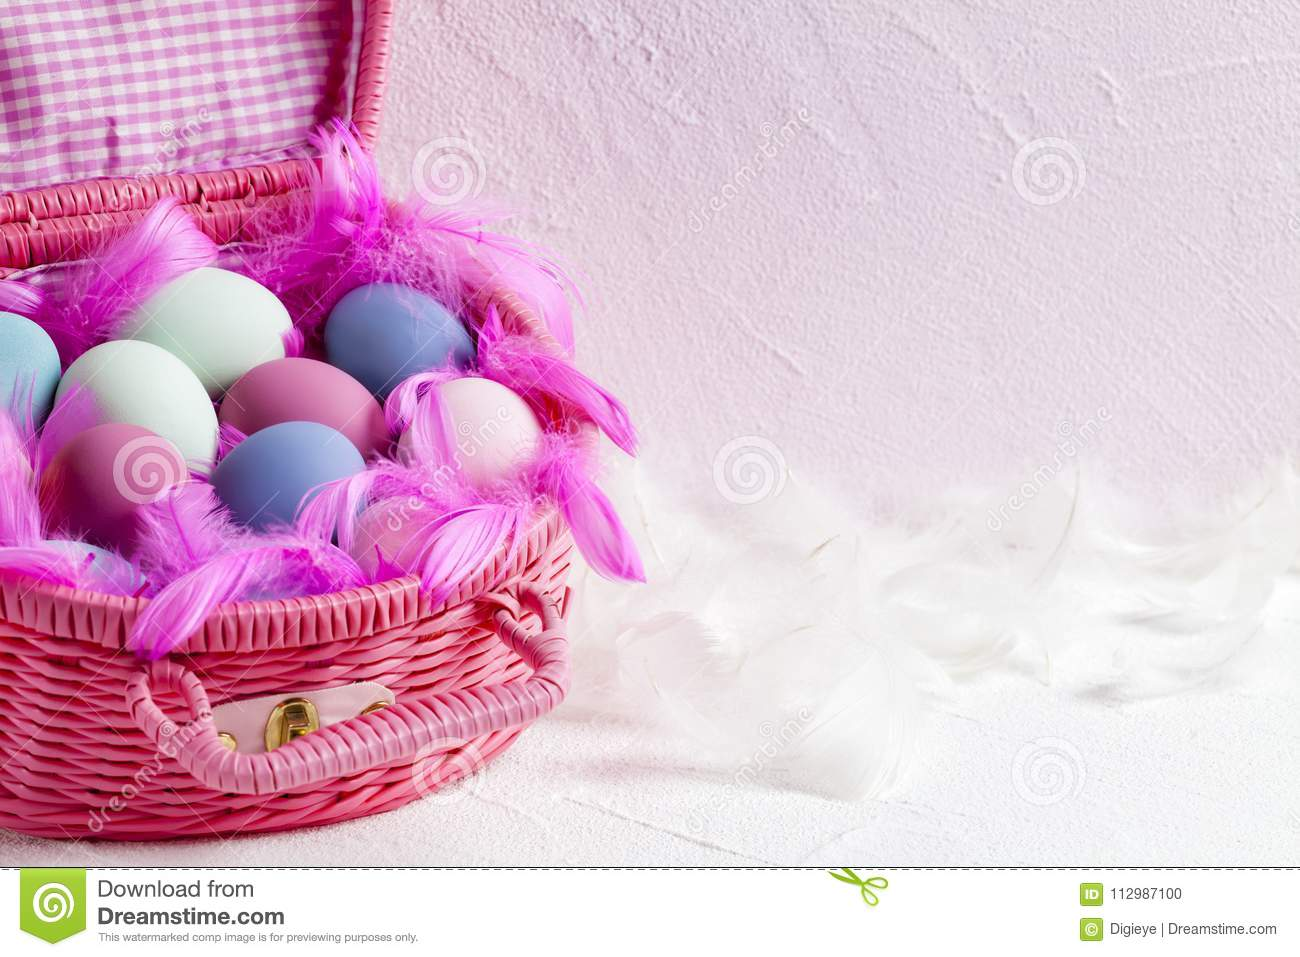 Pink basket full of colored Easter eggs and feathers